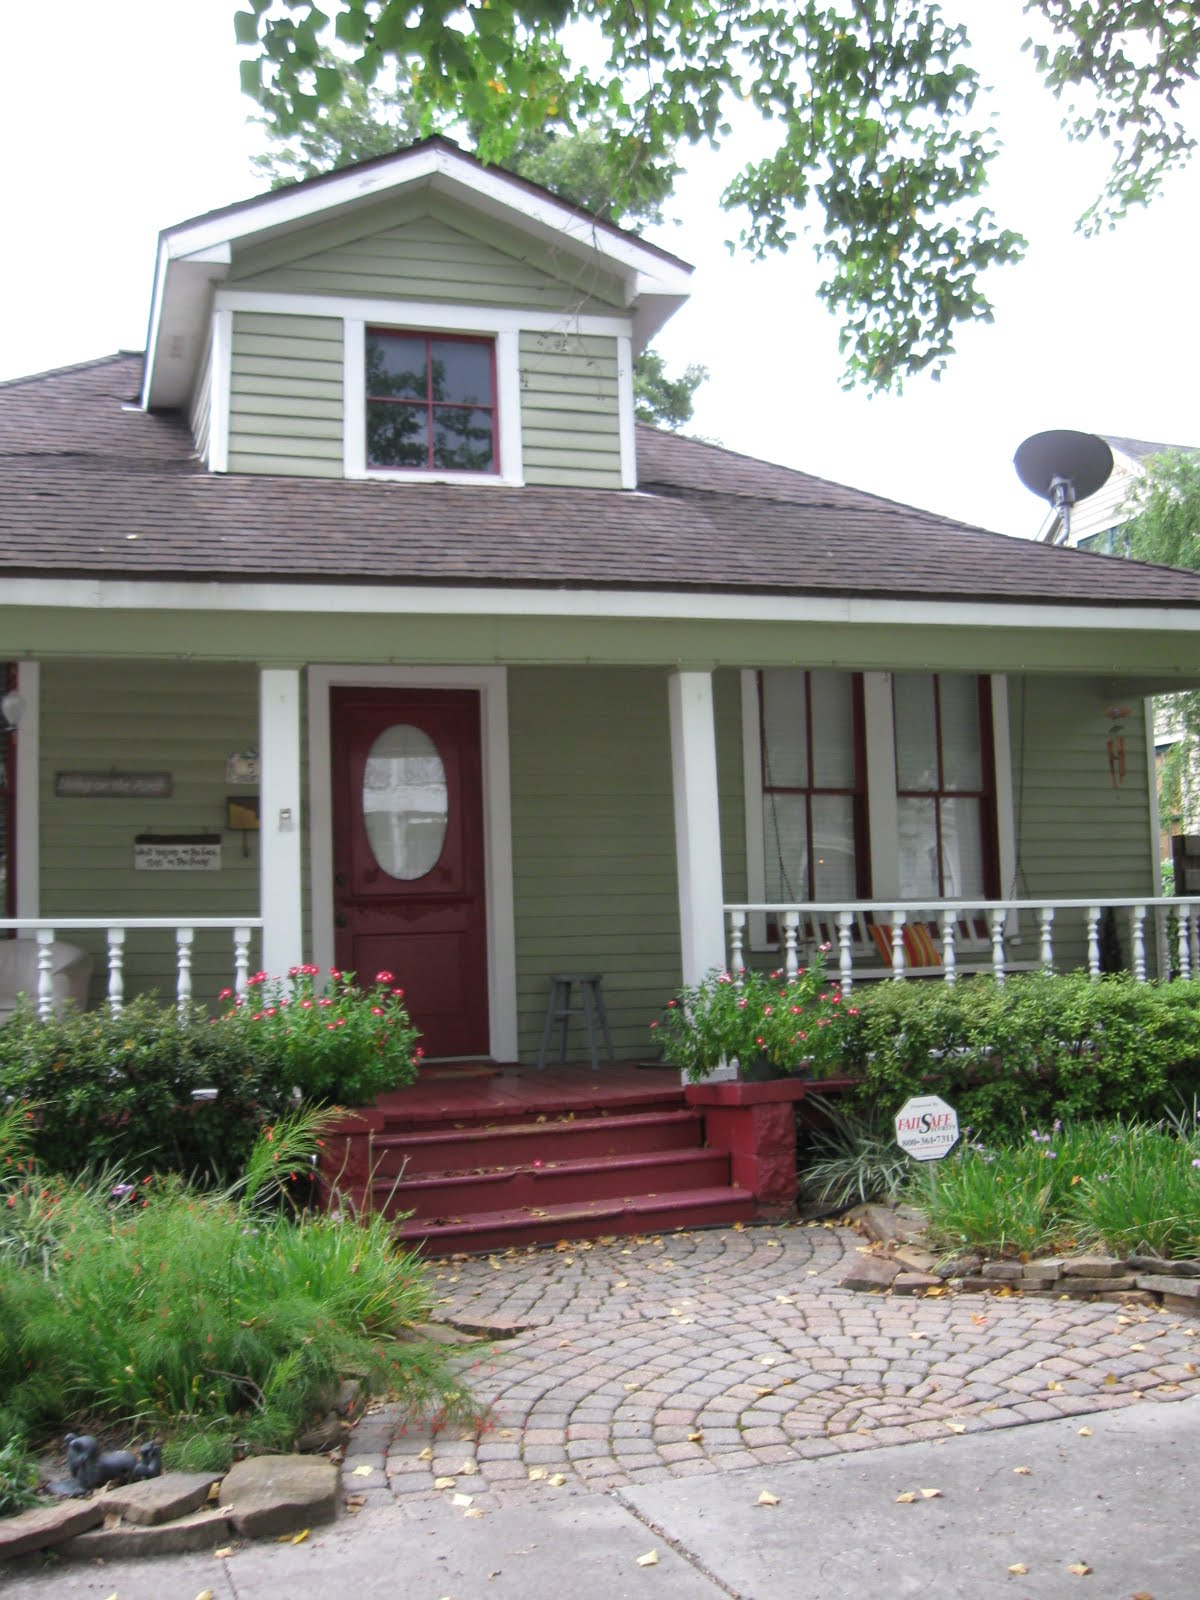 The other houston 1930 front porch bungalow for Small house deck designs